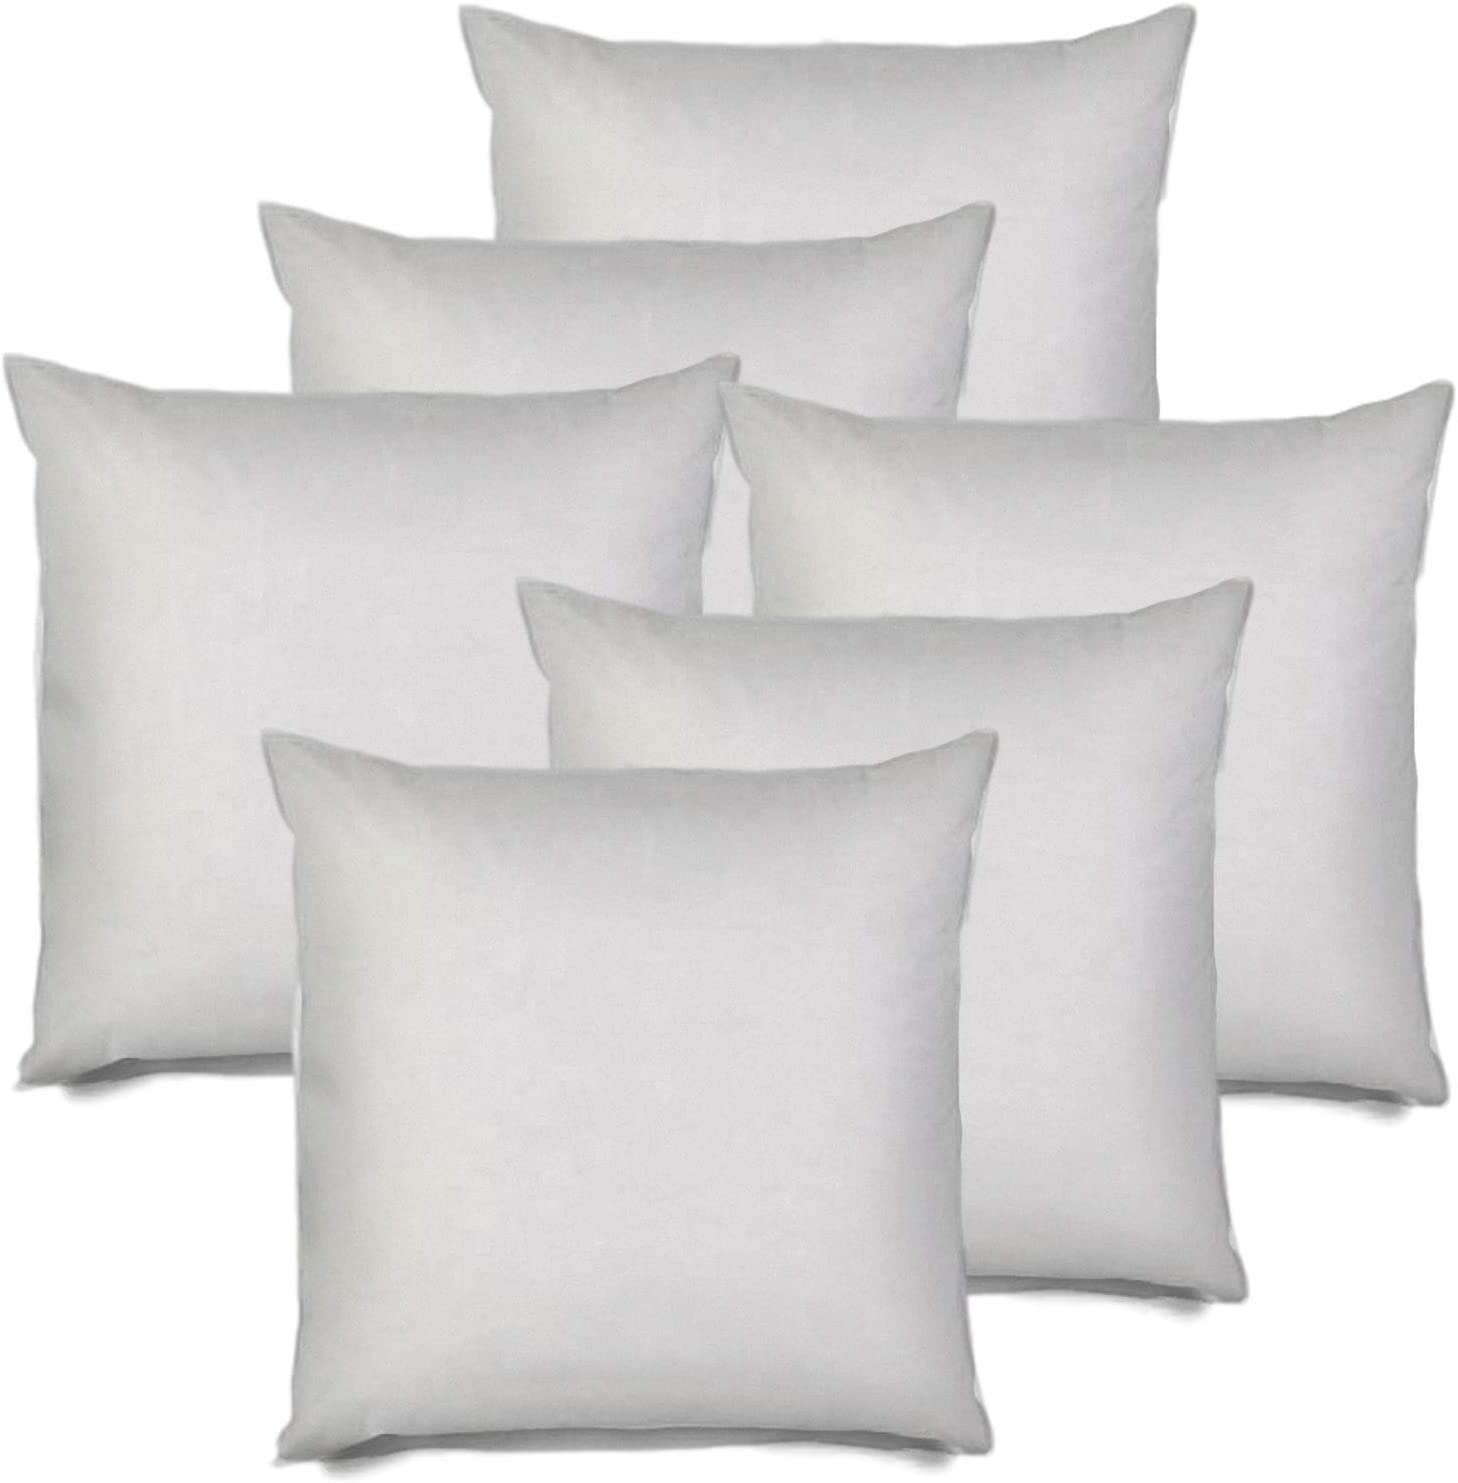 MSD 6 Pack Pillow Insert 28x28 Hypoallergenic Square Form Sham Stuffer Standard White Polyester Decorative Euro Throw Pillow Inserts for Sofa Bed - Made in USA (Set of 6) - Machine Washable and Dry